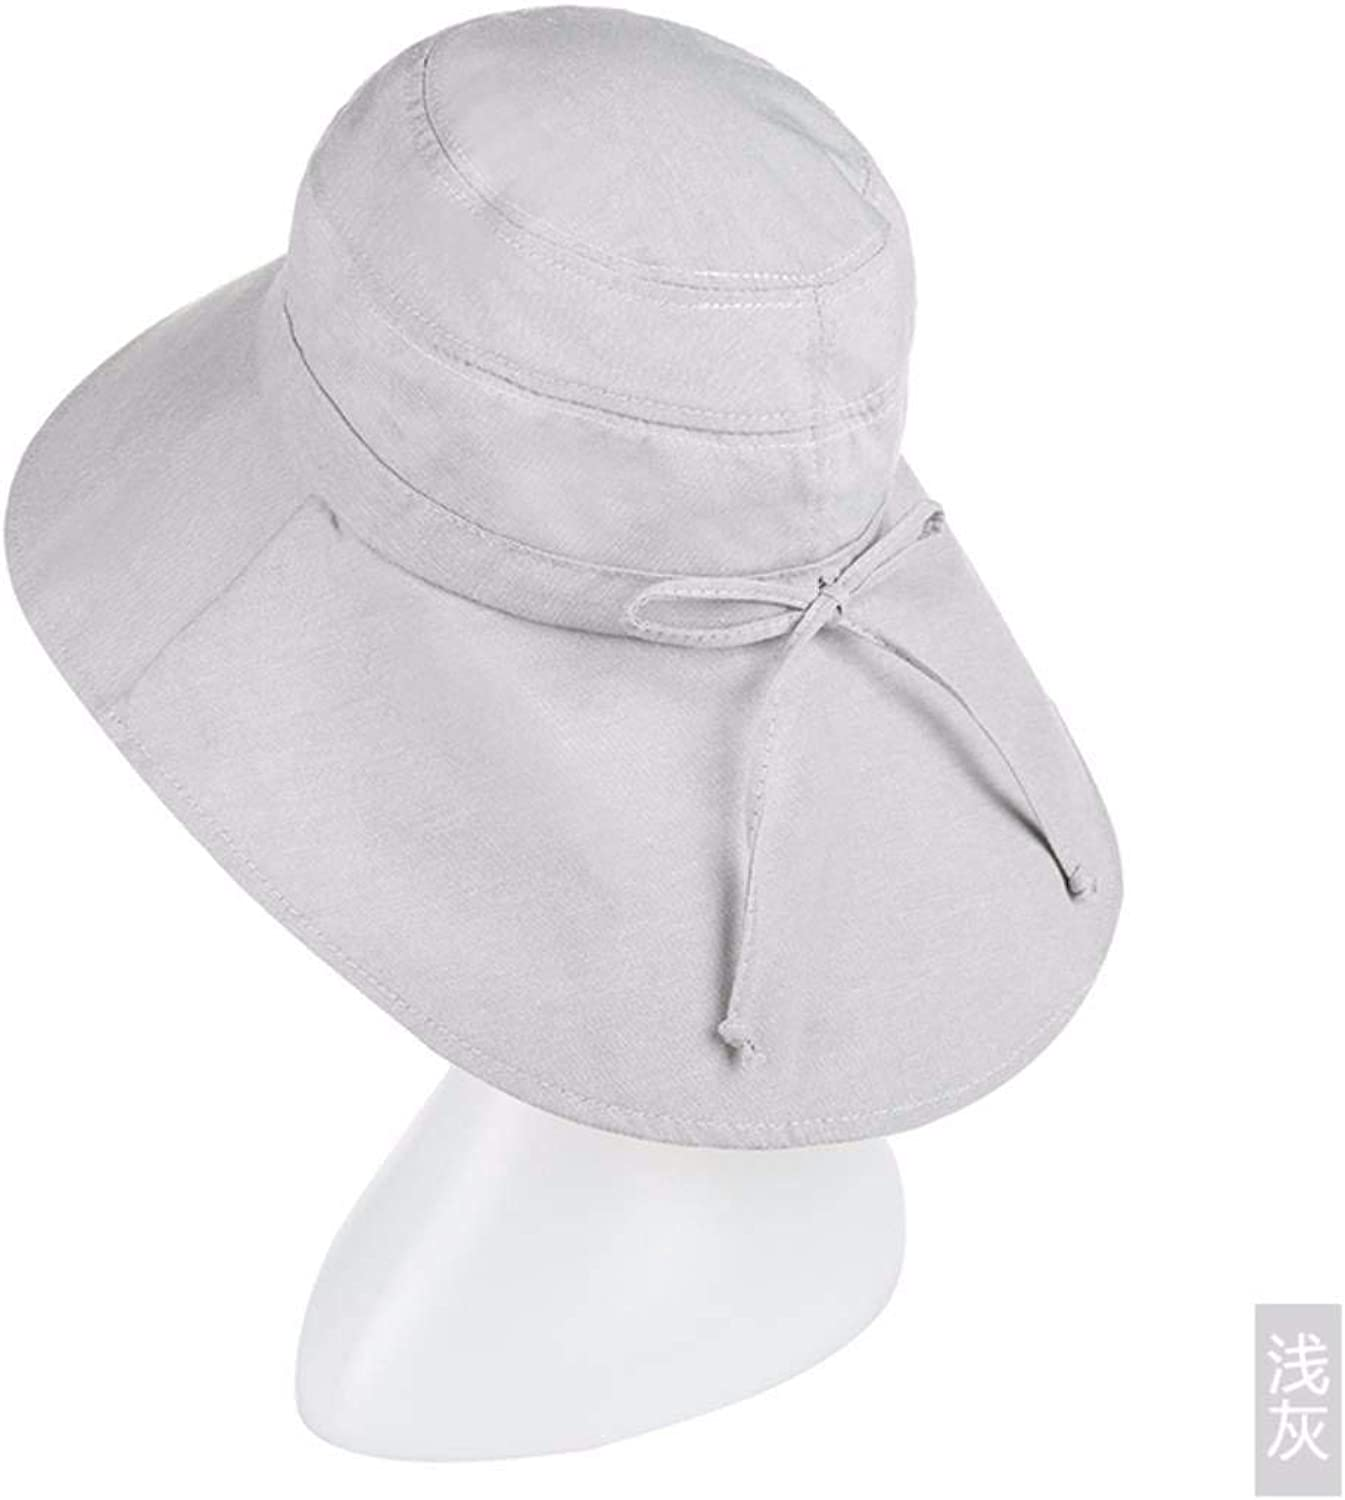 Dingkun Gift for Mom Gift for grandmother Summer hat folding outdoor sun hat cycling hat shading cap Beach Hat Hat